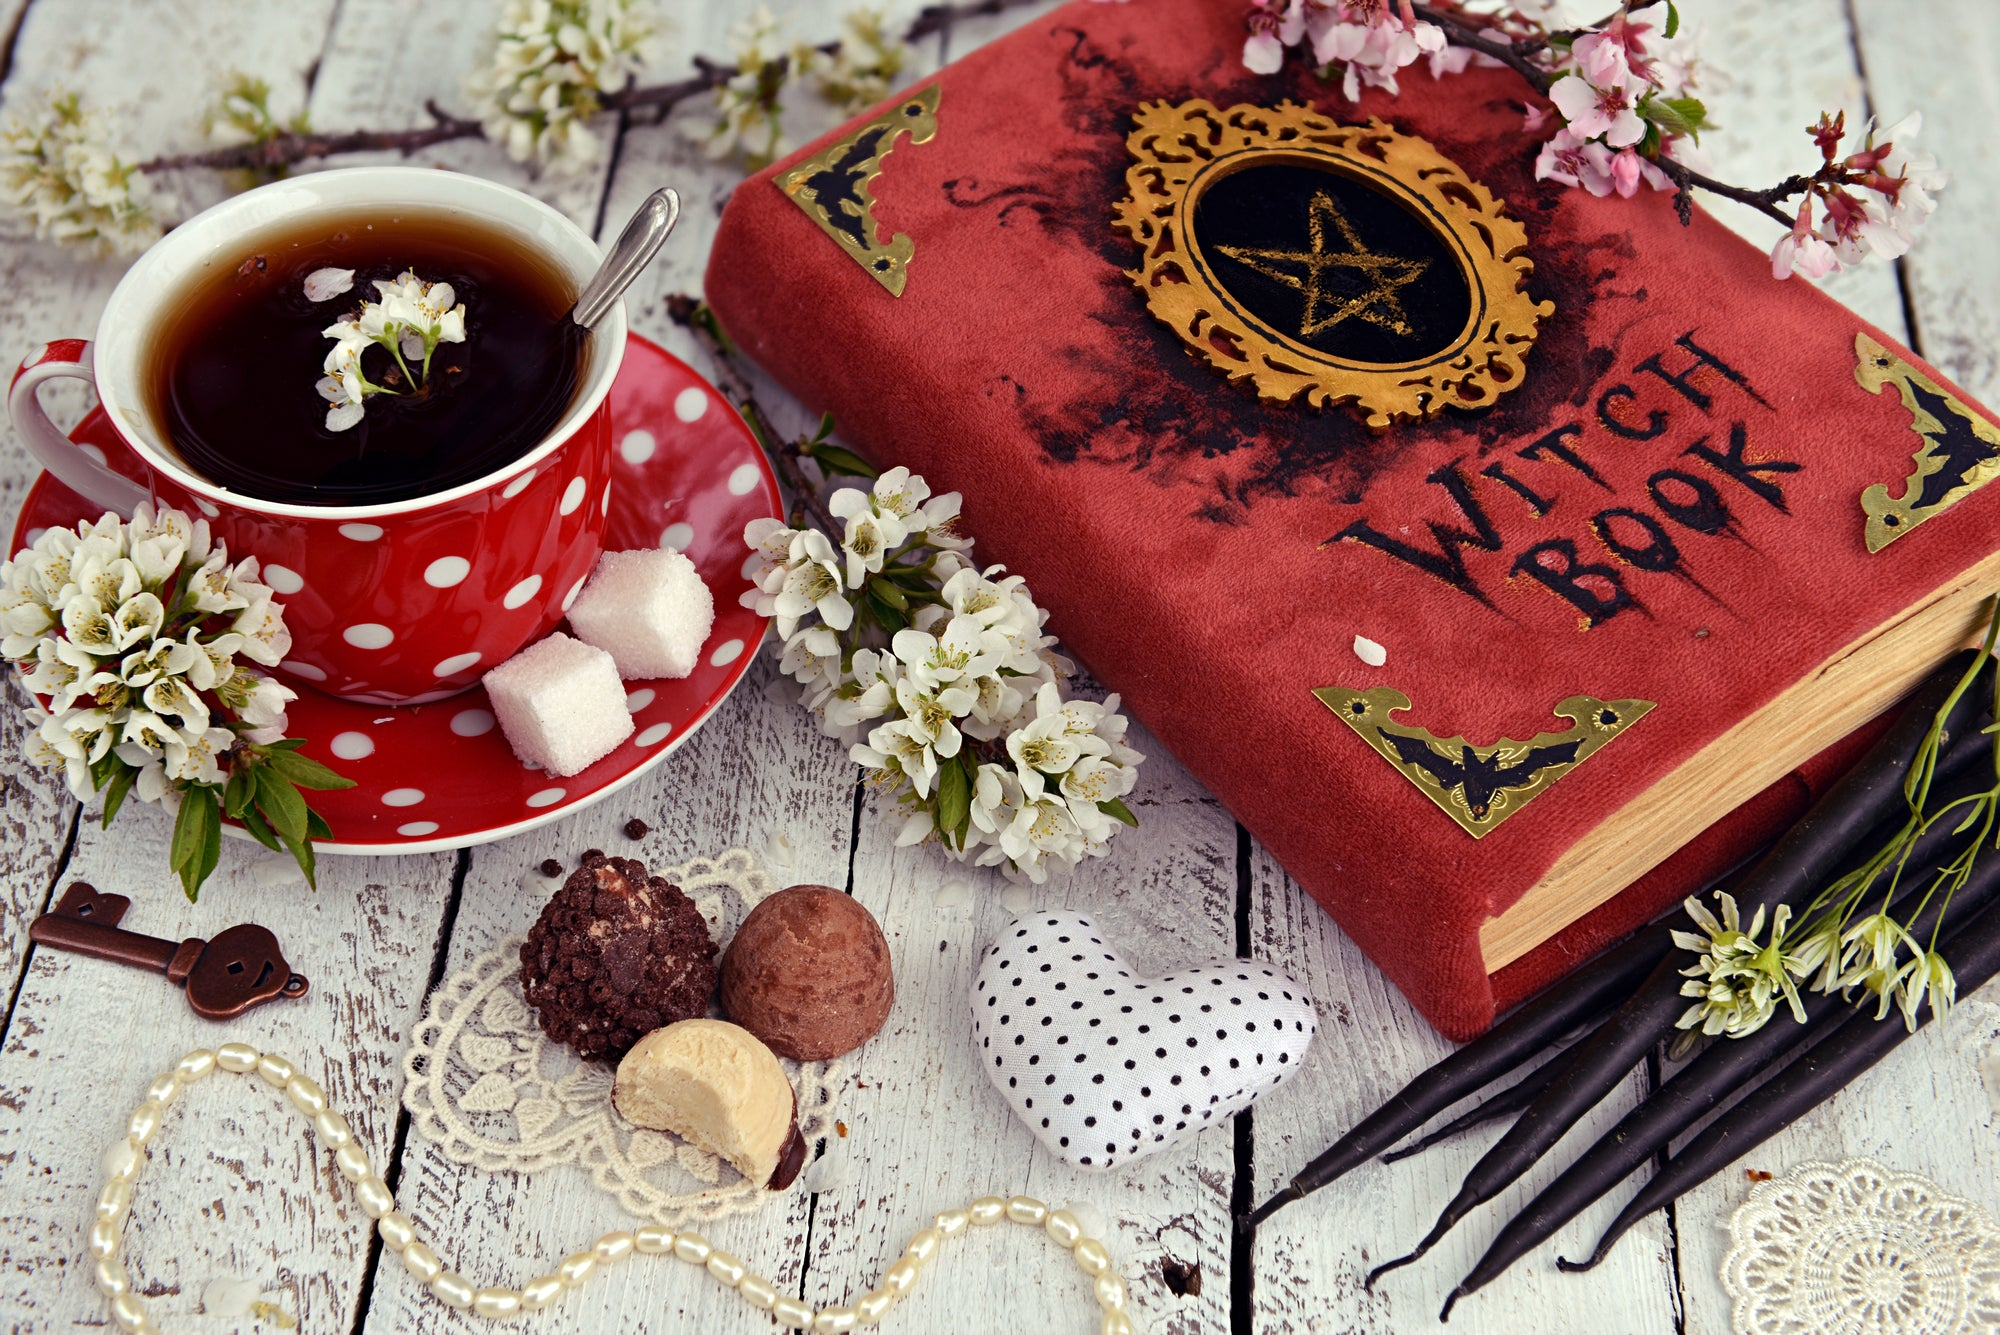 Red cup of flower tea with black candles, candies and witch book on table. Occult, esoteric and divination still life. Halloween background with vintage objects